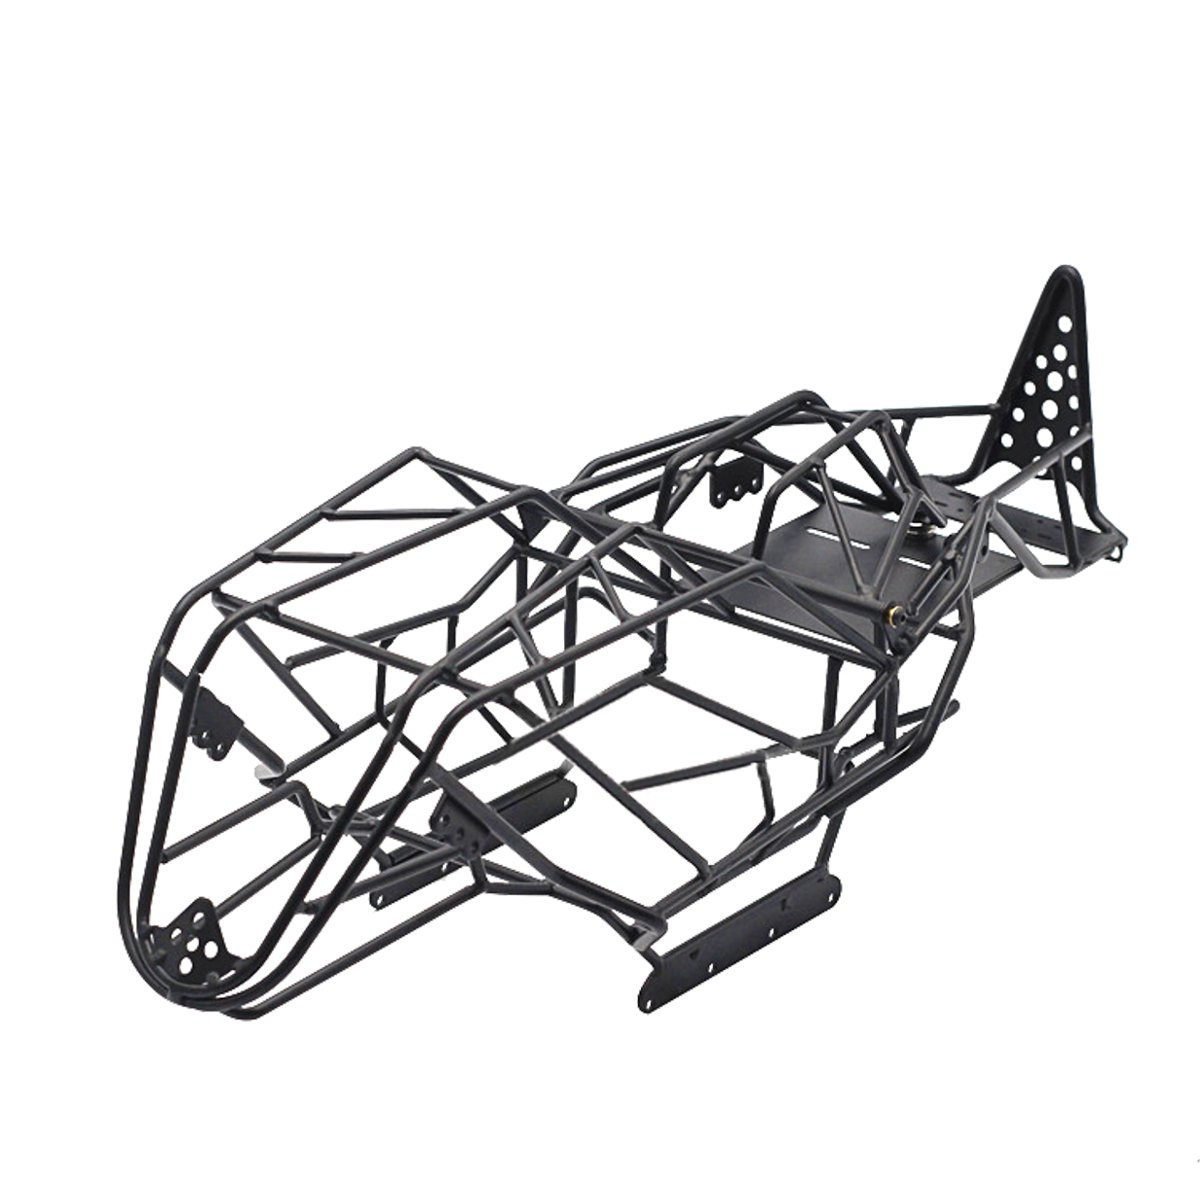 Steel Roll Cage Body Frame For 1 10 Axial Wraith Crawler